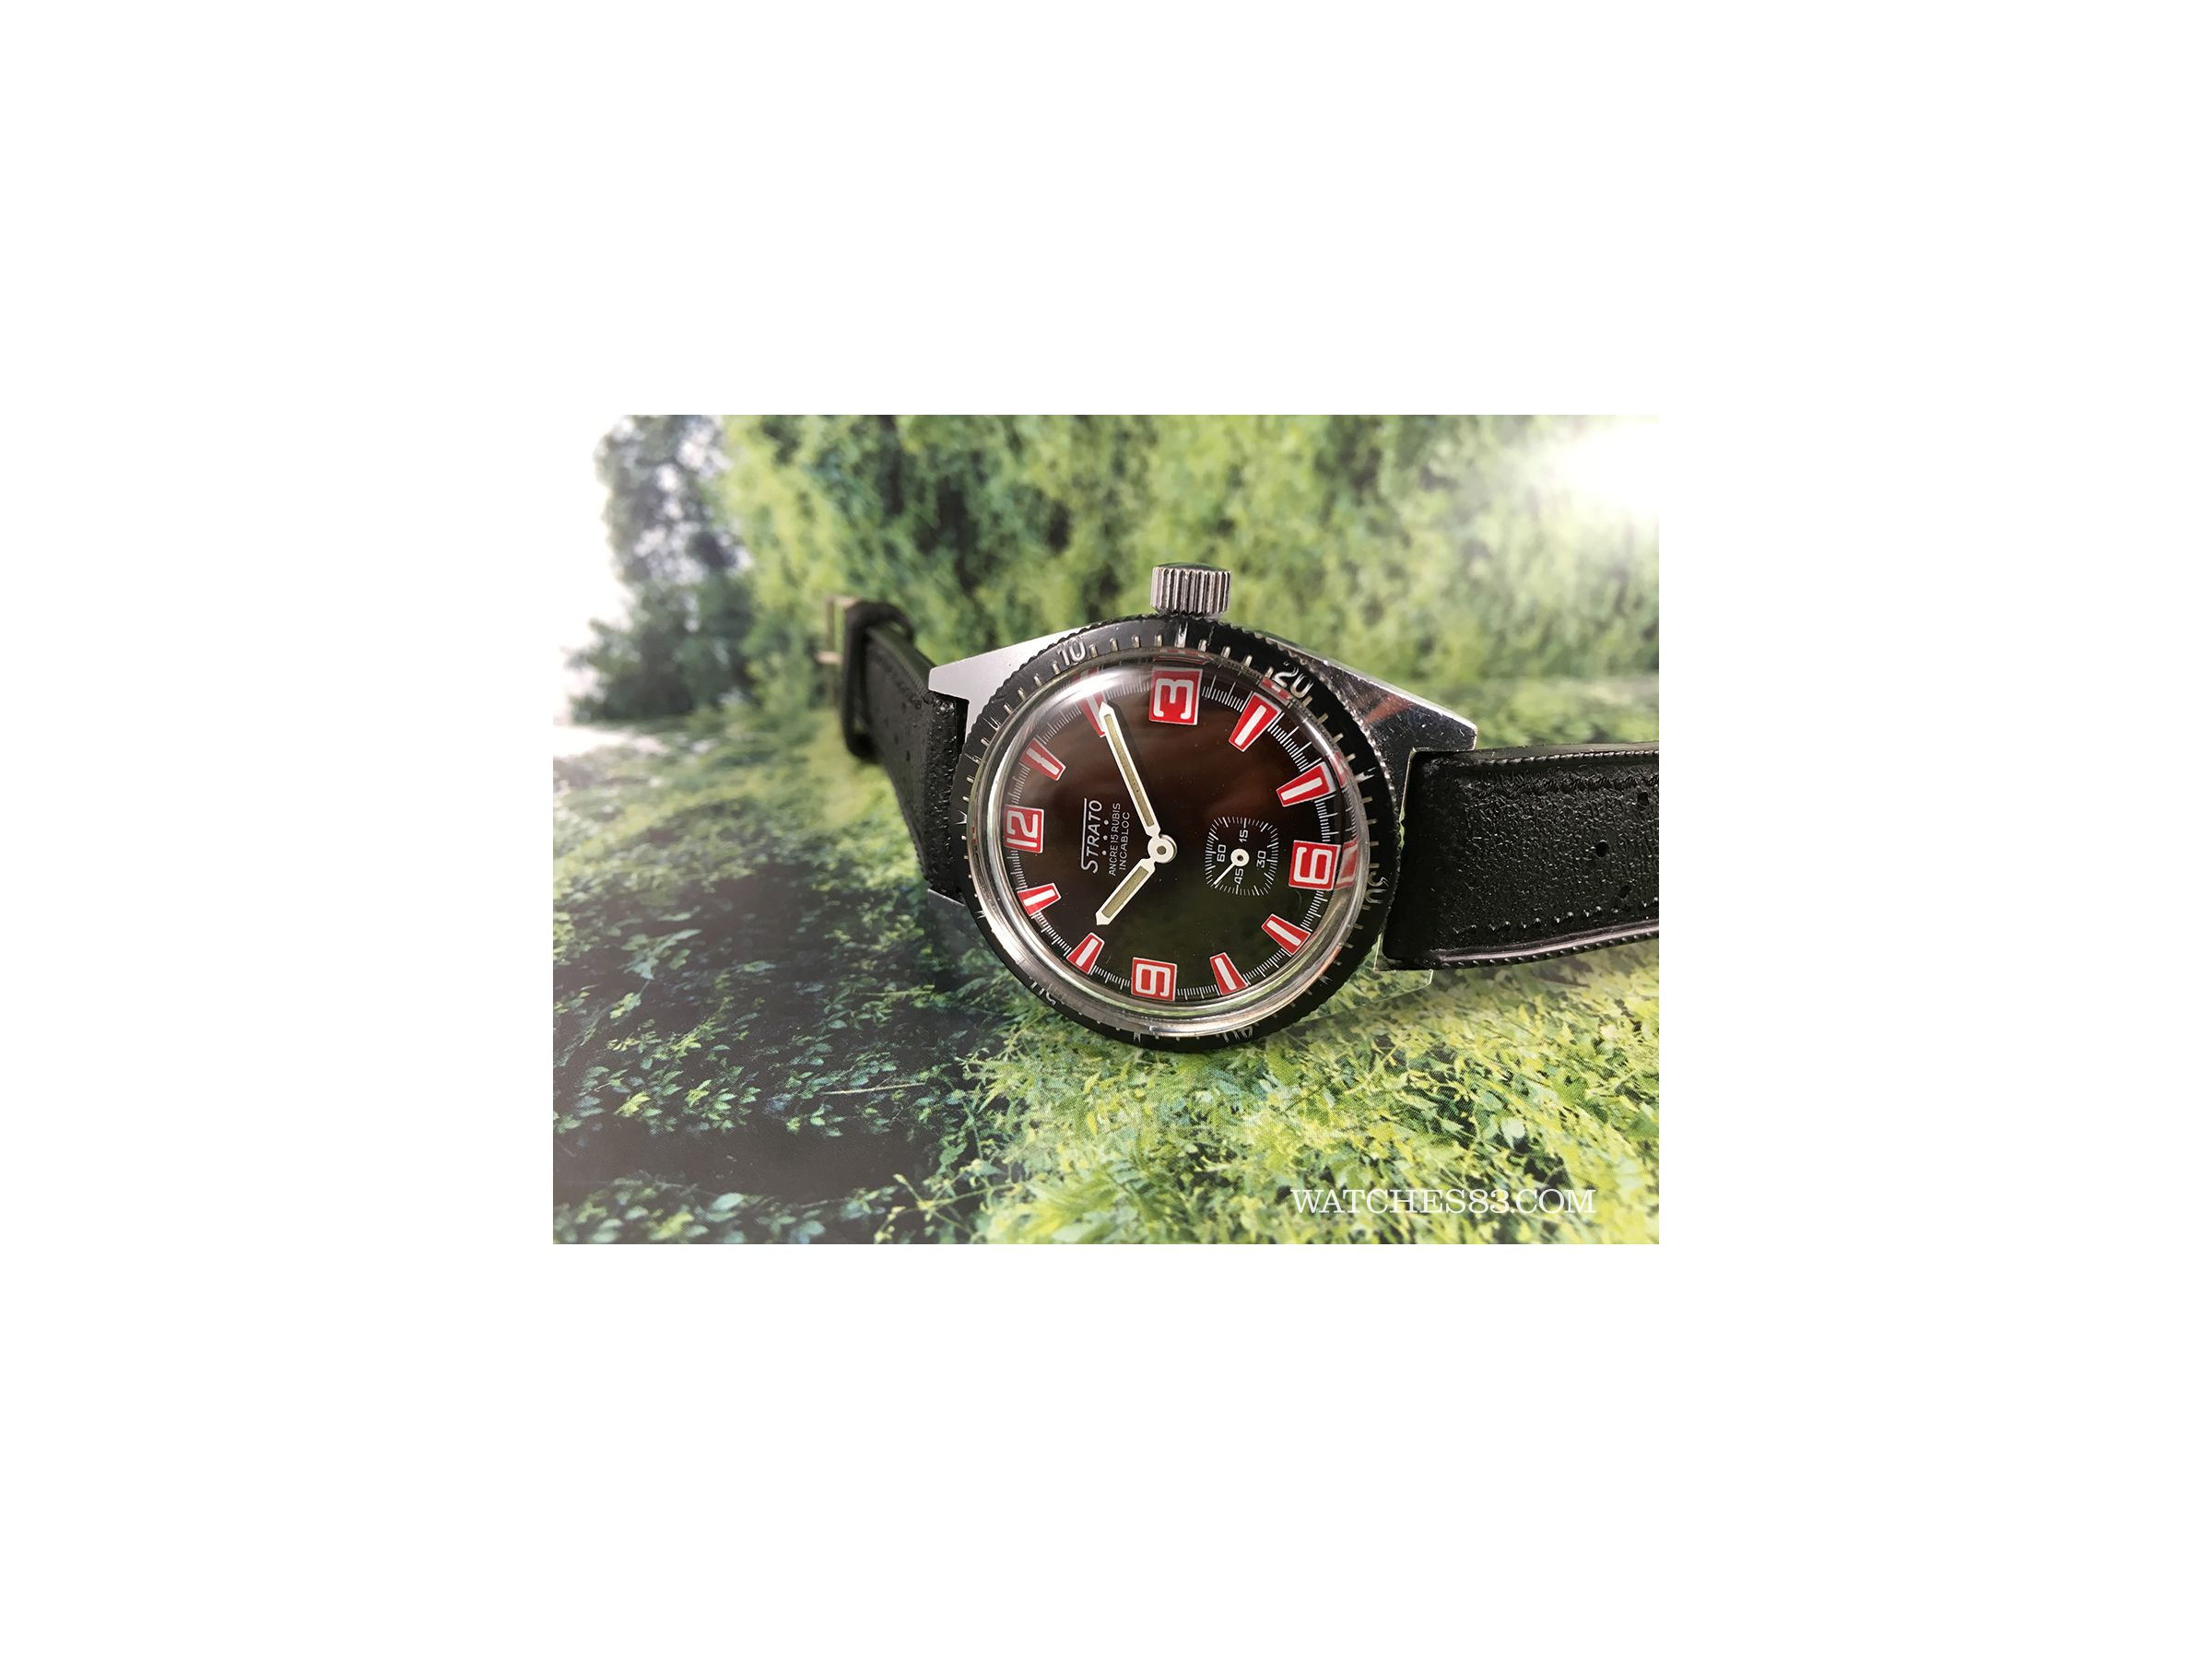 Vintage Watch Hand Winding Strato Skin Diver Wonderful Strato Vintage Watches Watches83